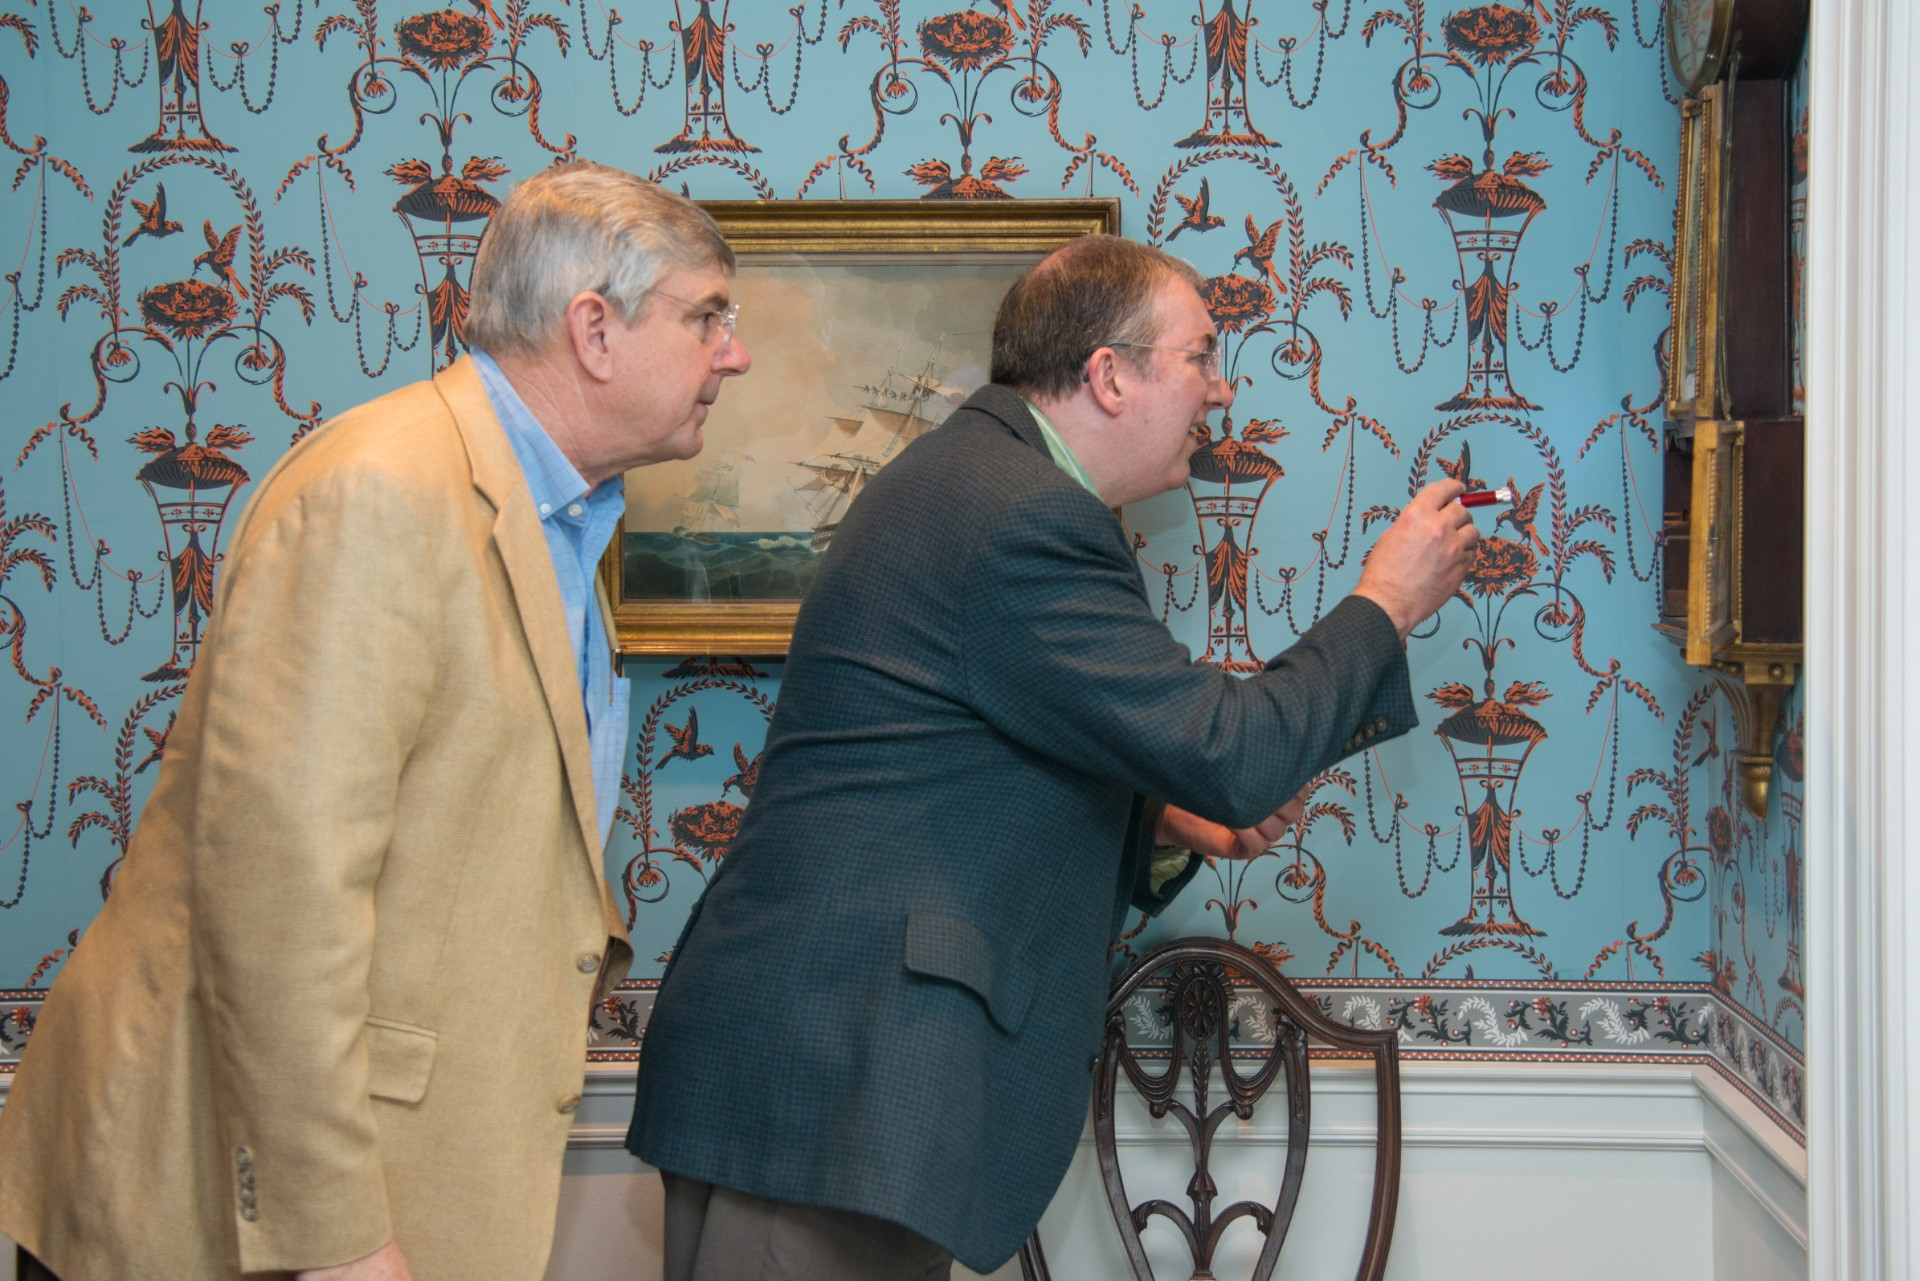 Bayou Bend Object Detectives - Men in Federal Parlor with Flashlight